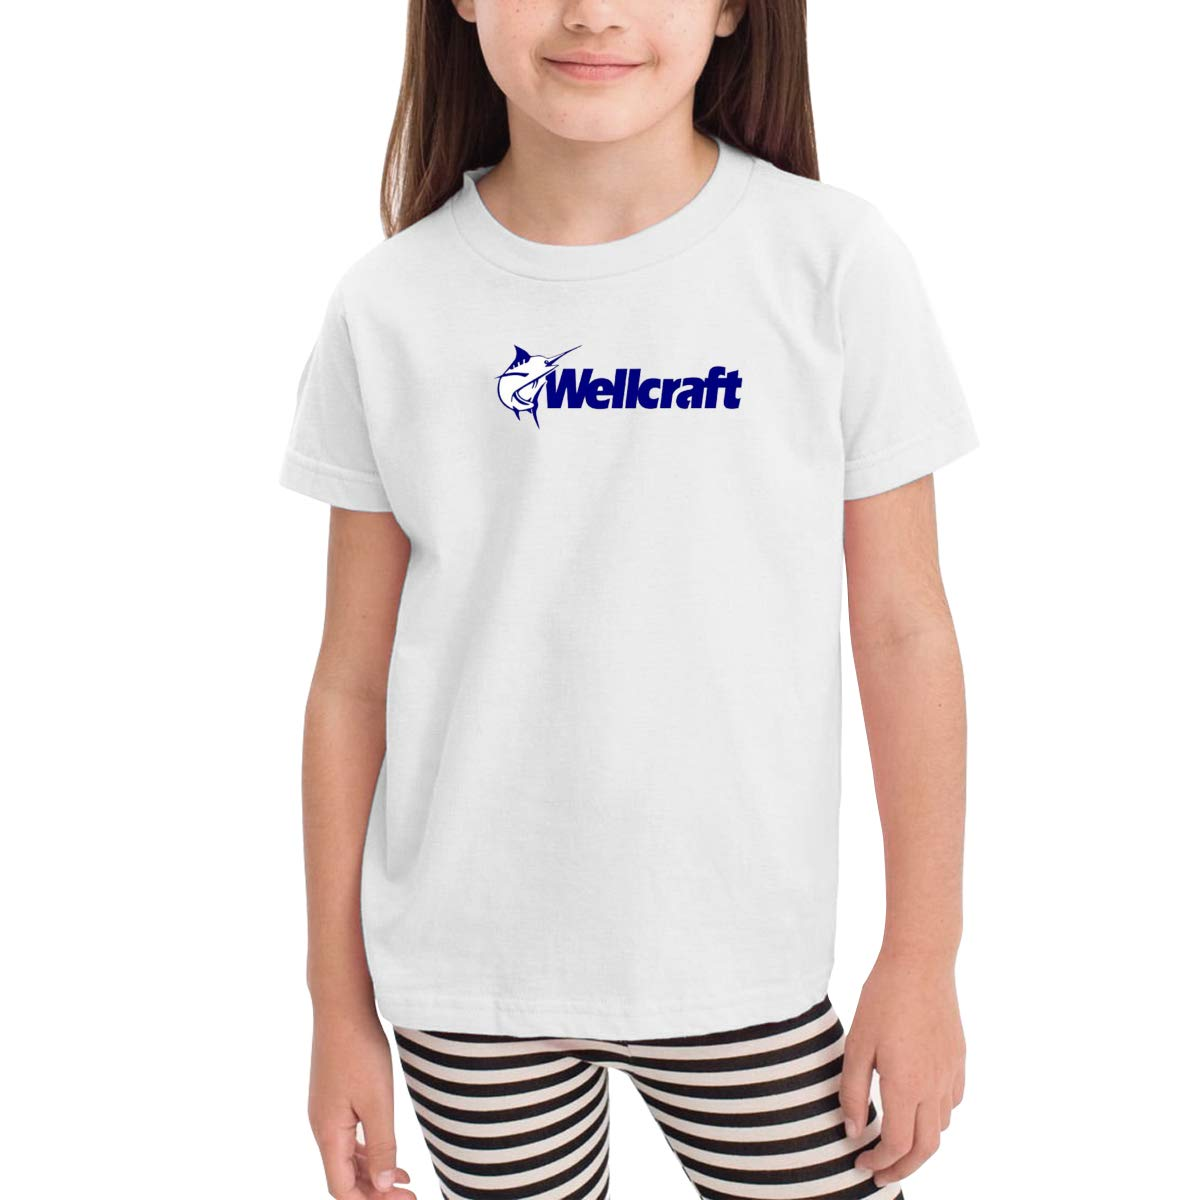 Onlybabycare Wellcraft Logo 100/% Cotton Toddler Baby Boys Girls Kids Short Sleeve T Shirt Top Tee Clothes 2-6 T